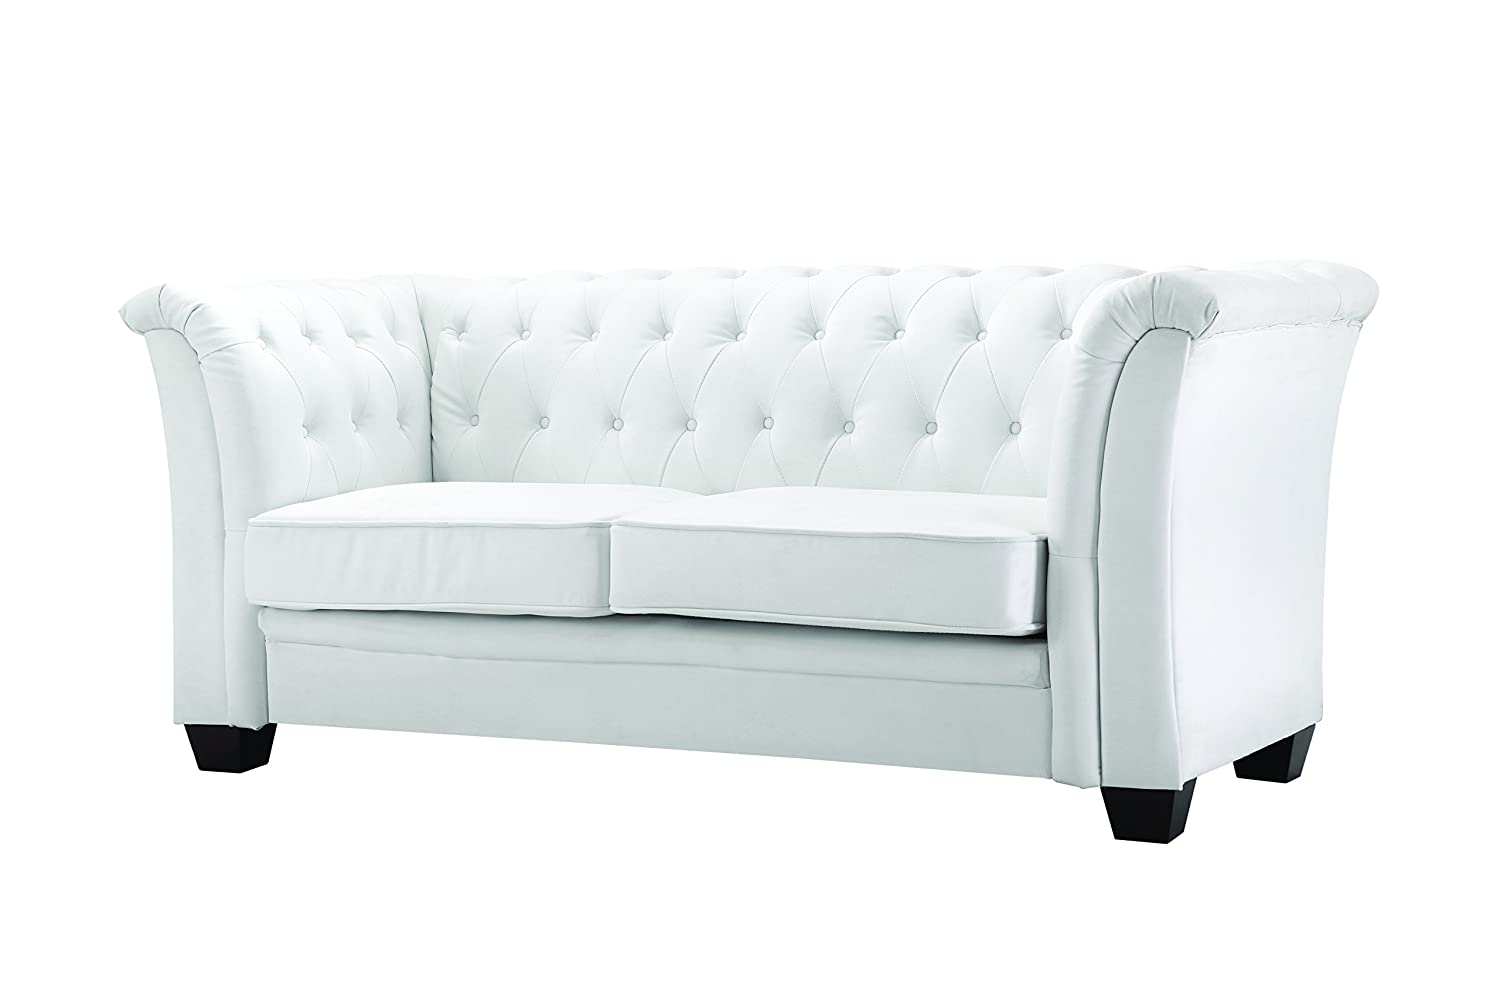 Amazon.com: Glory Furniture Mid Century Design Tufted Sofa ...